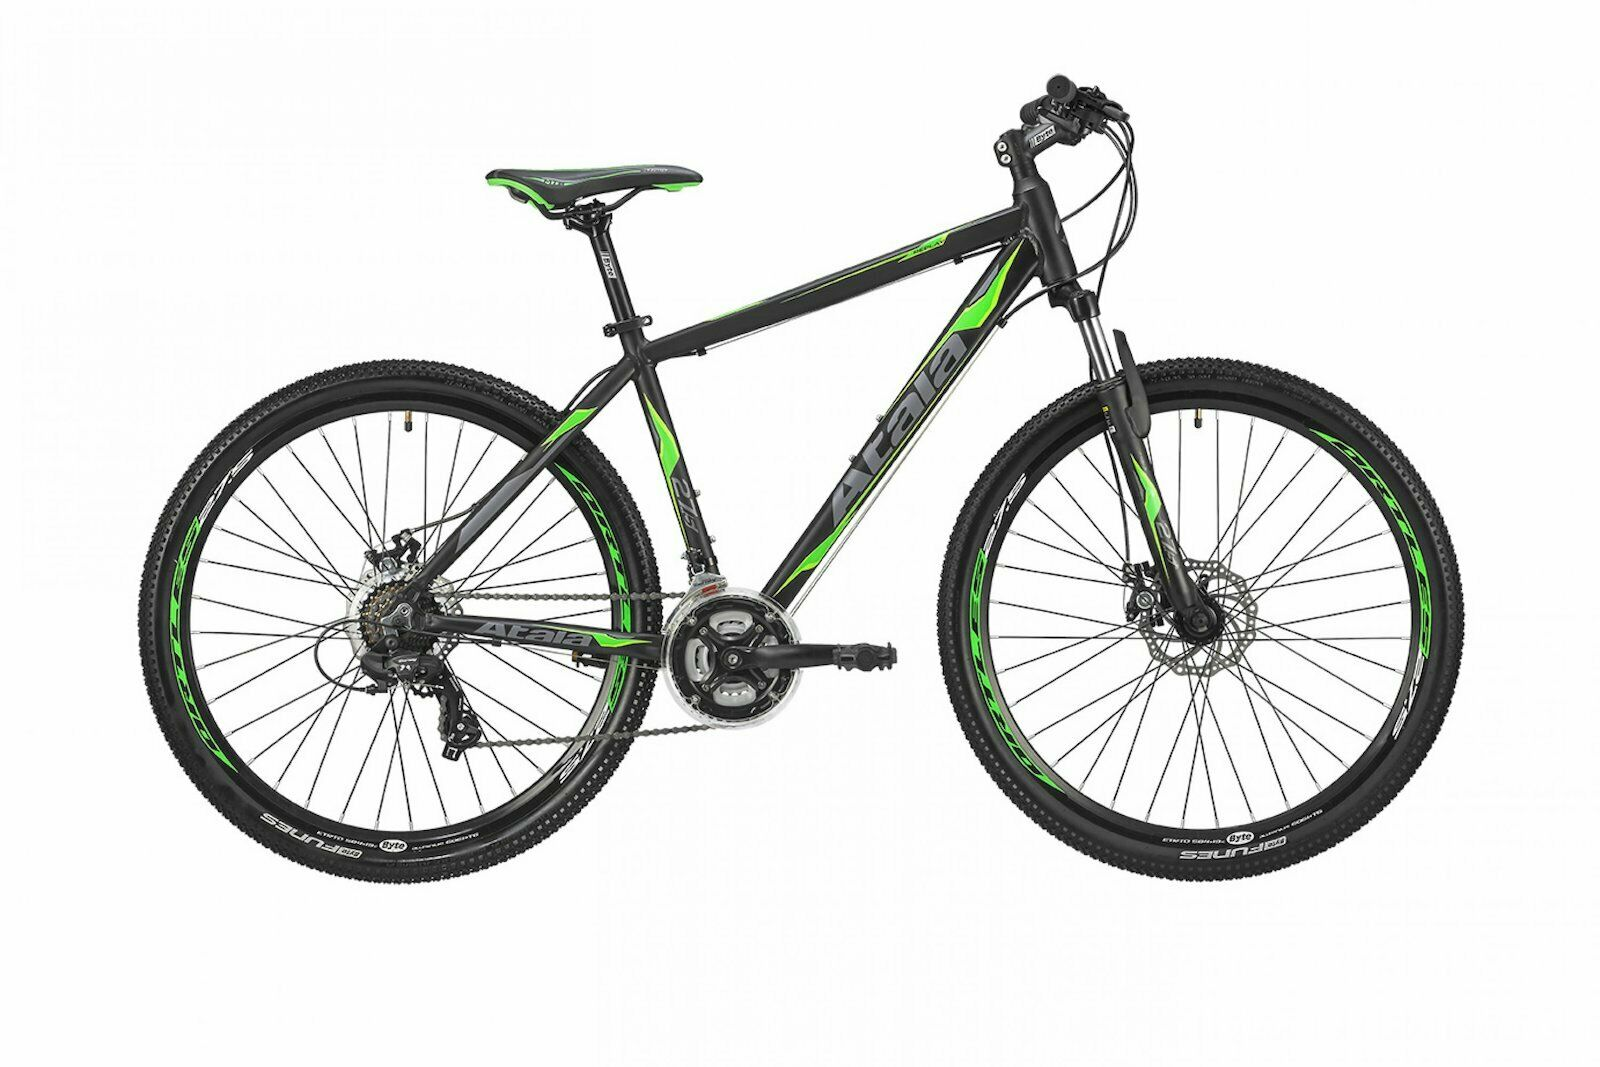 BICI BICICLETA UNISEX ATALA REPLAY STEF 27,5  21V 2019 MOUNTAIN BIKE ALLUMINIO2